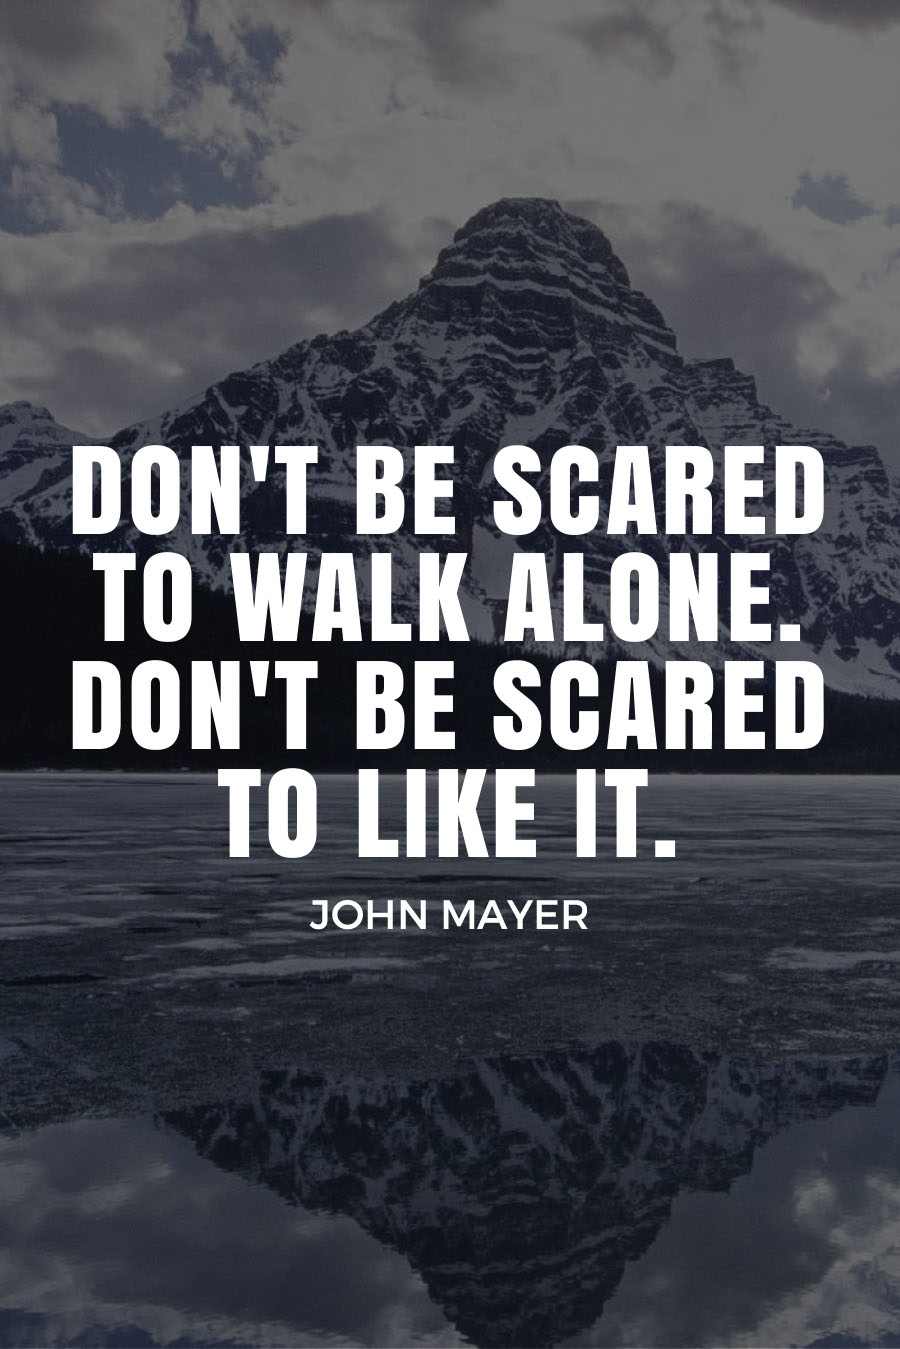 Five Quotes About Travel Fears - DON'T BE SCARED TO WALK ALONE. DON'T BE SCARED TO LIKE IT. - John Mayer